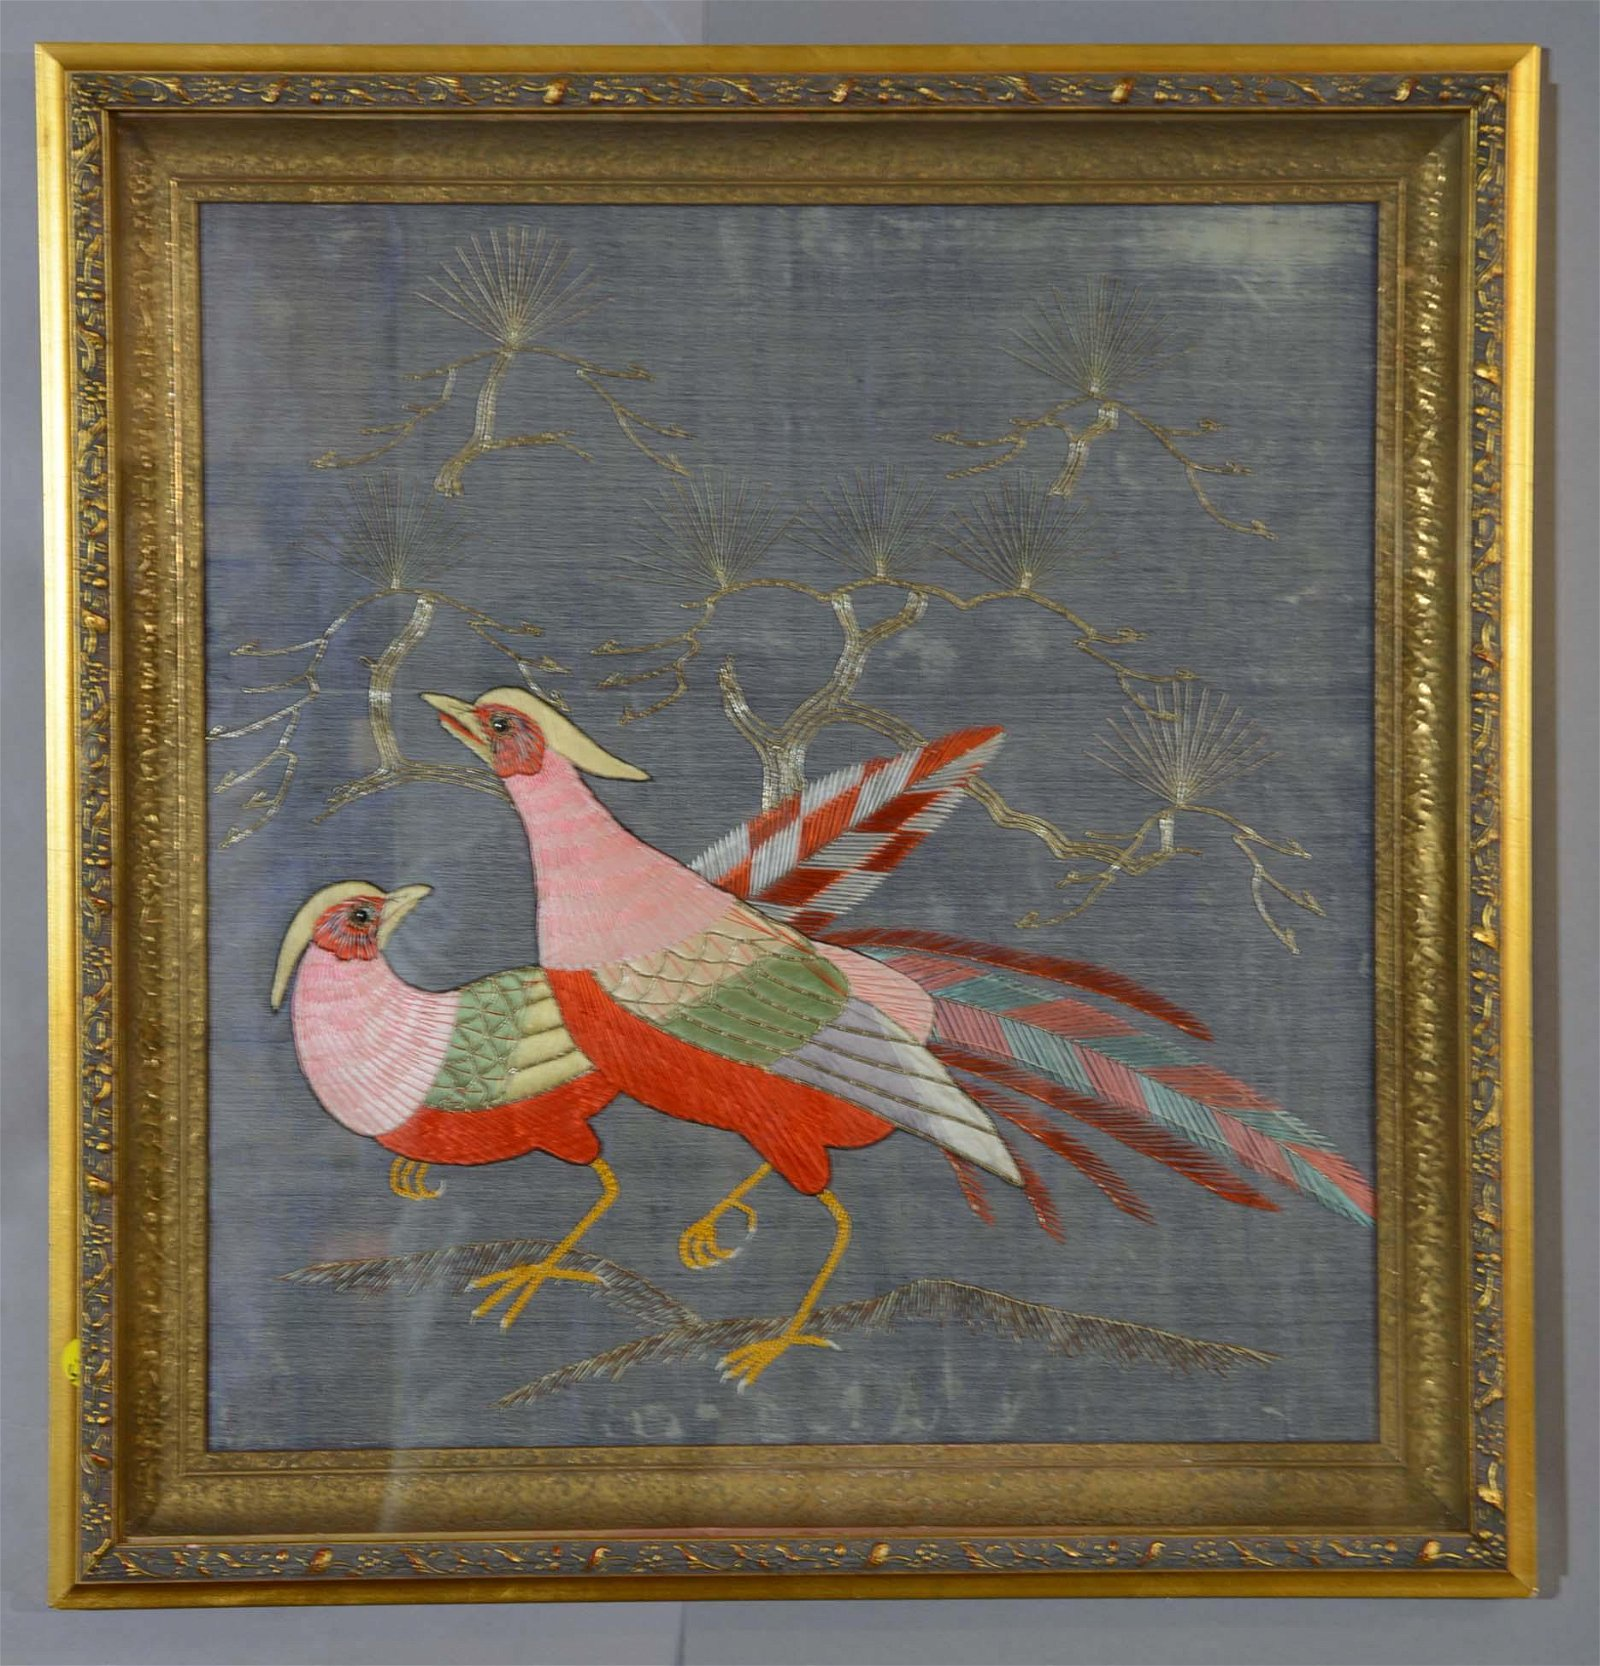 Antique Chinese Silk Embroidery of 2 Birds